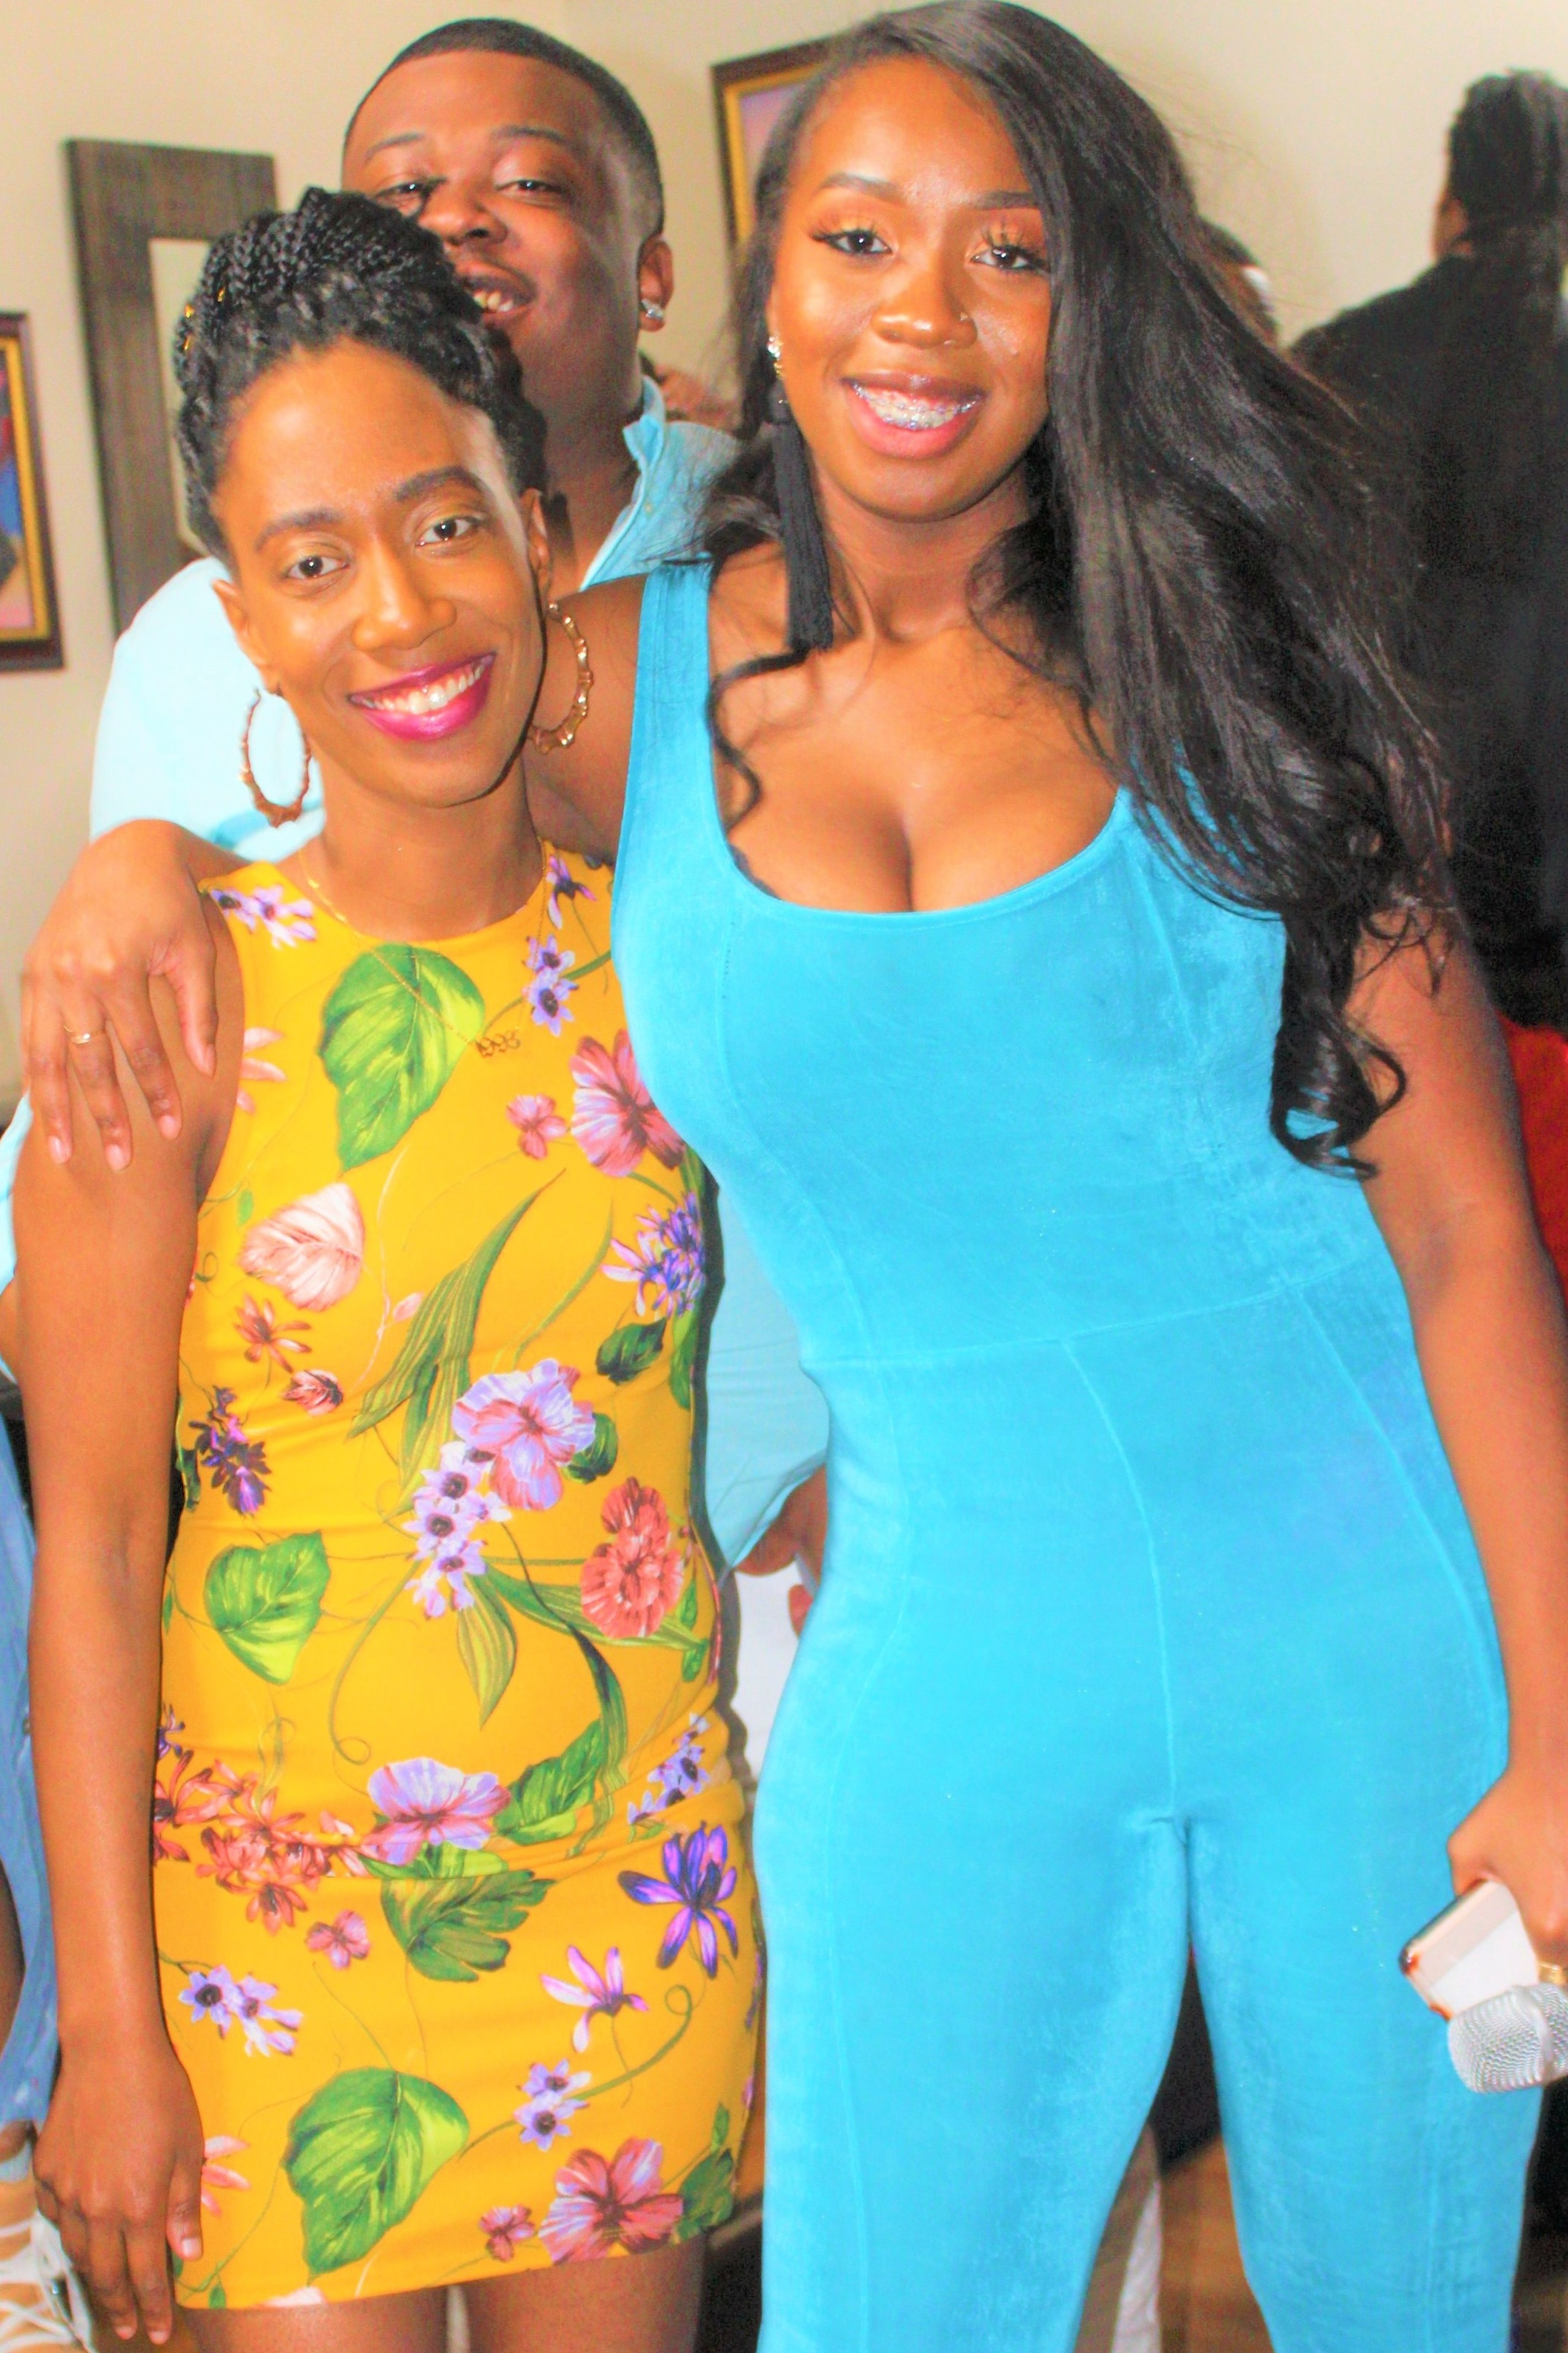 I shared some smiles with the panelist Shon and Founder of Authenticity, Lonette during their first live segment.